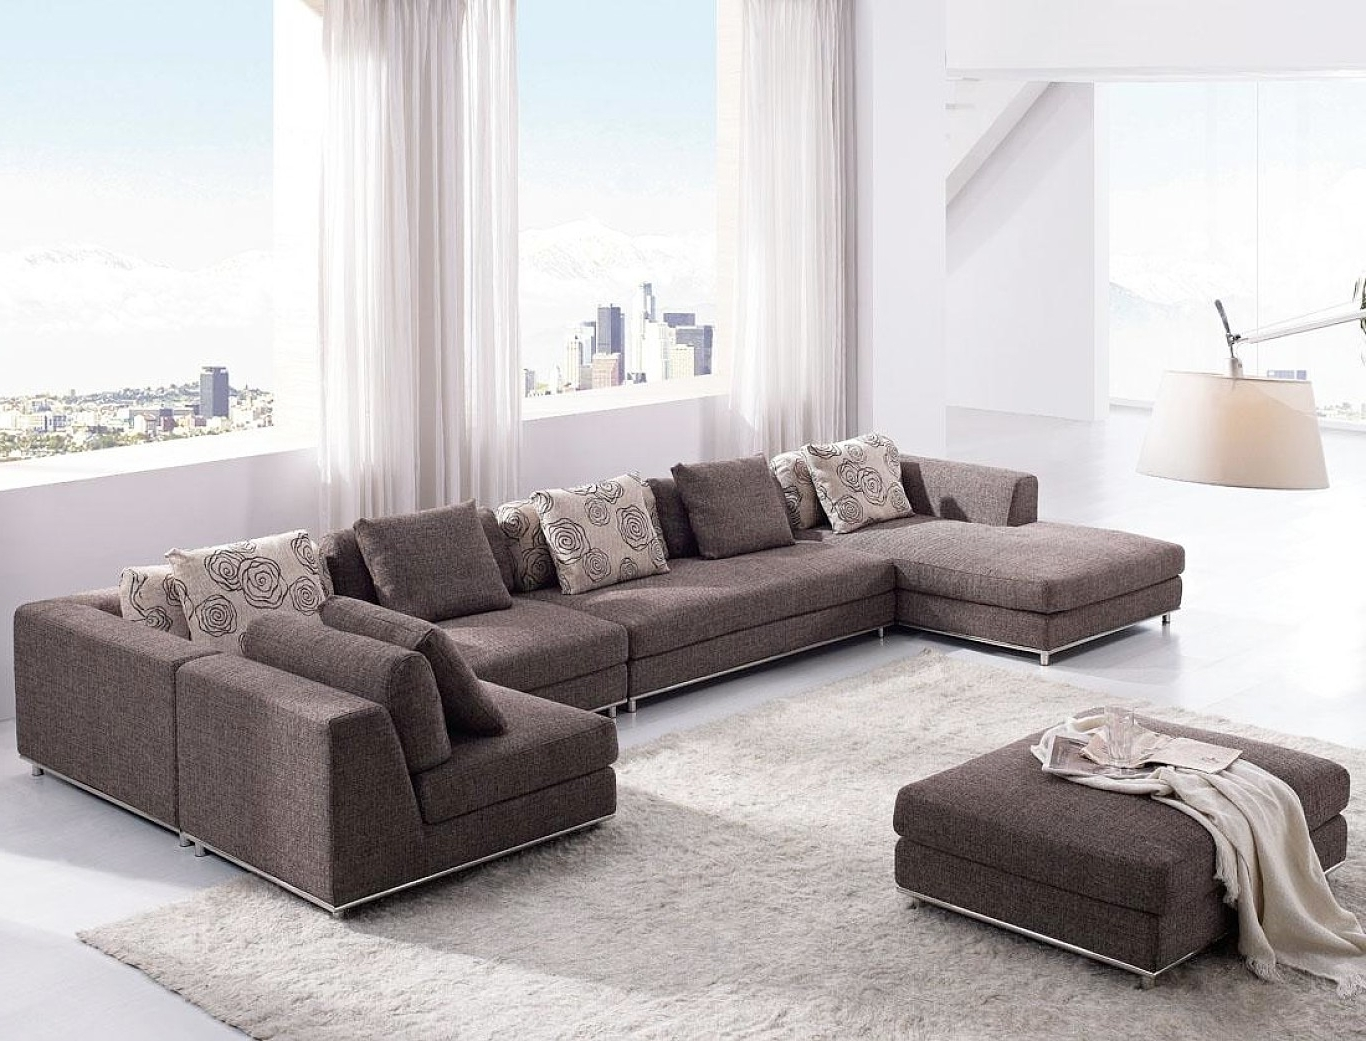 Modern Living Room Sets Houzz Modern Sofa Contemporary Living Room Intended For Latest Houzz Sectional Sofas (View 12 of 20)